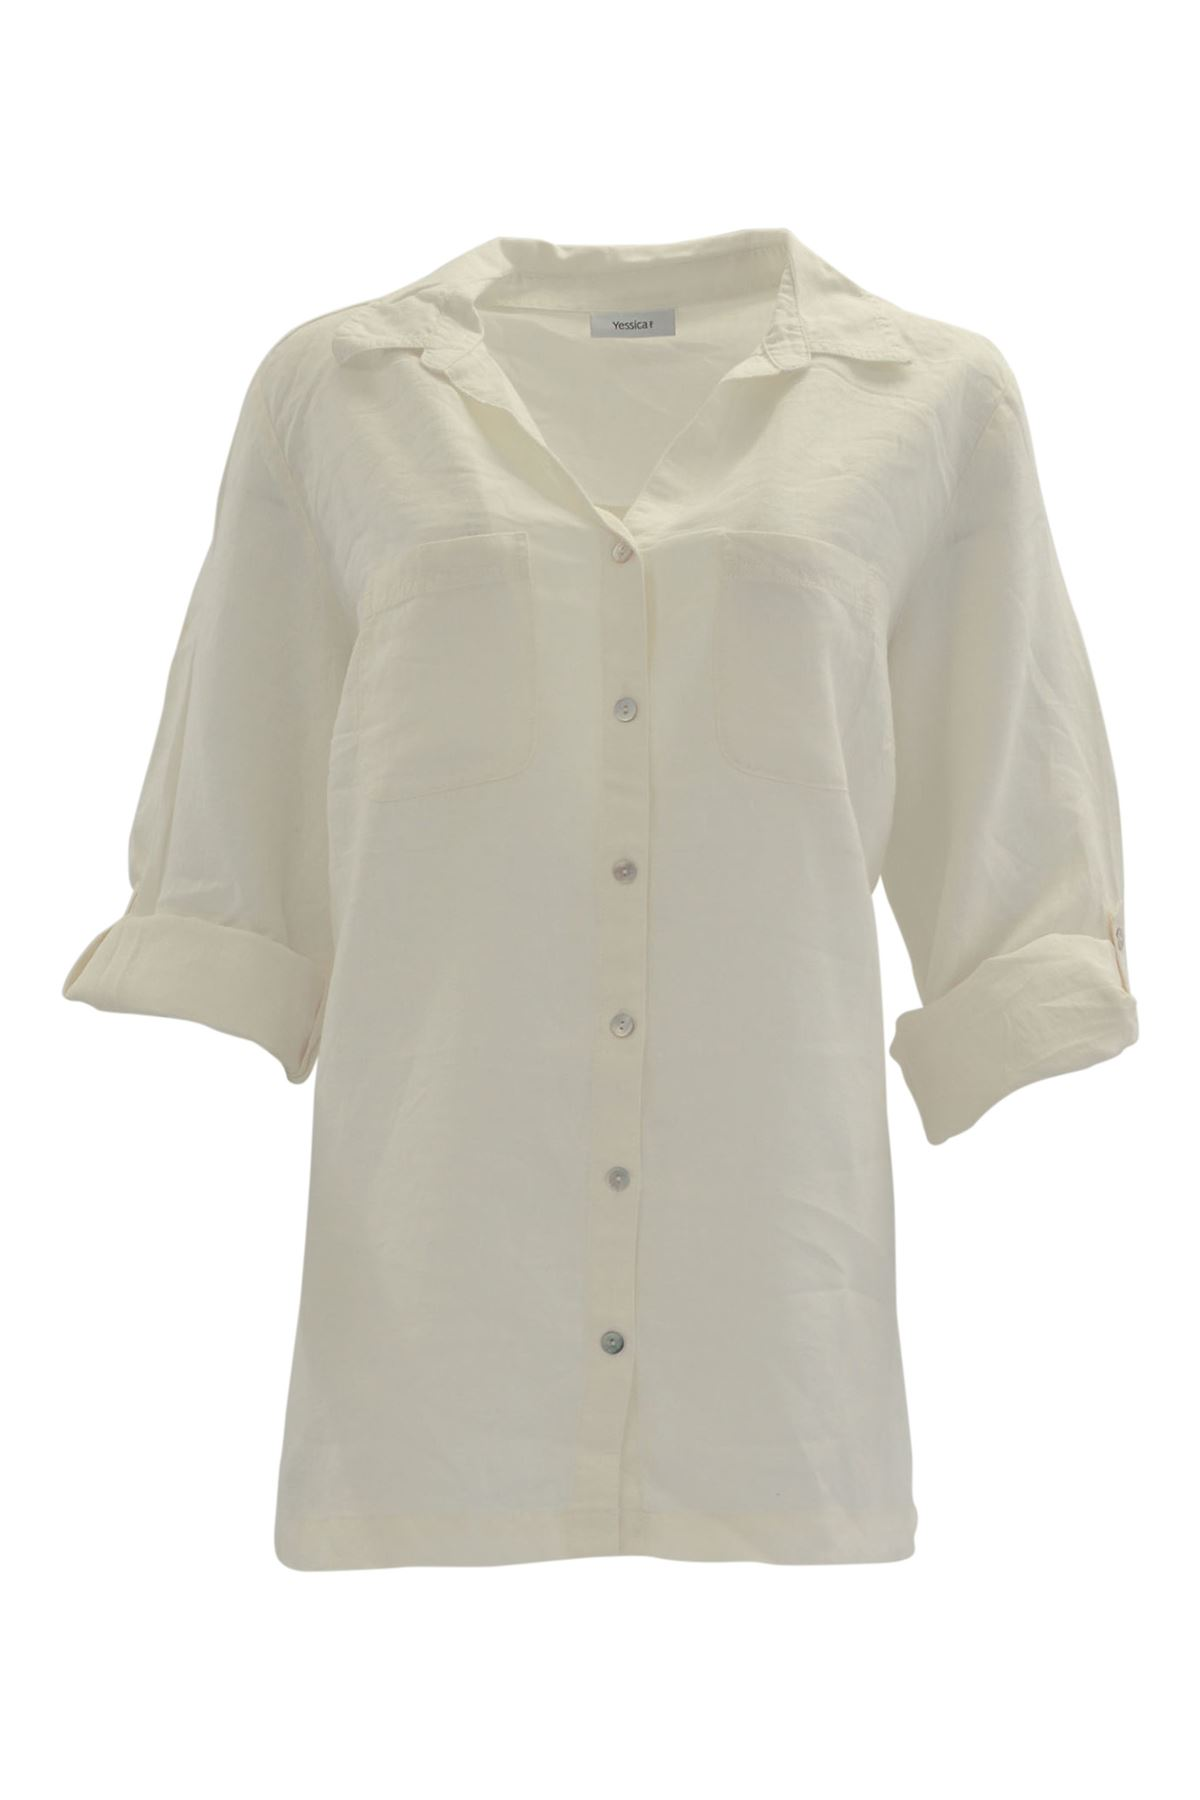 YESSICA-Linen-Blouse-Shirt-in-Pink-or-Ivory-RRP-25 thumbnail 9